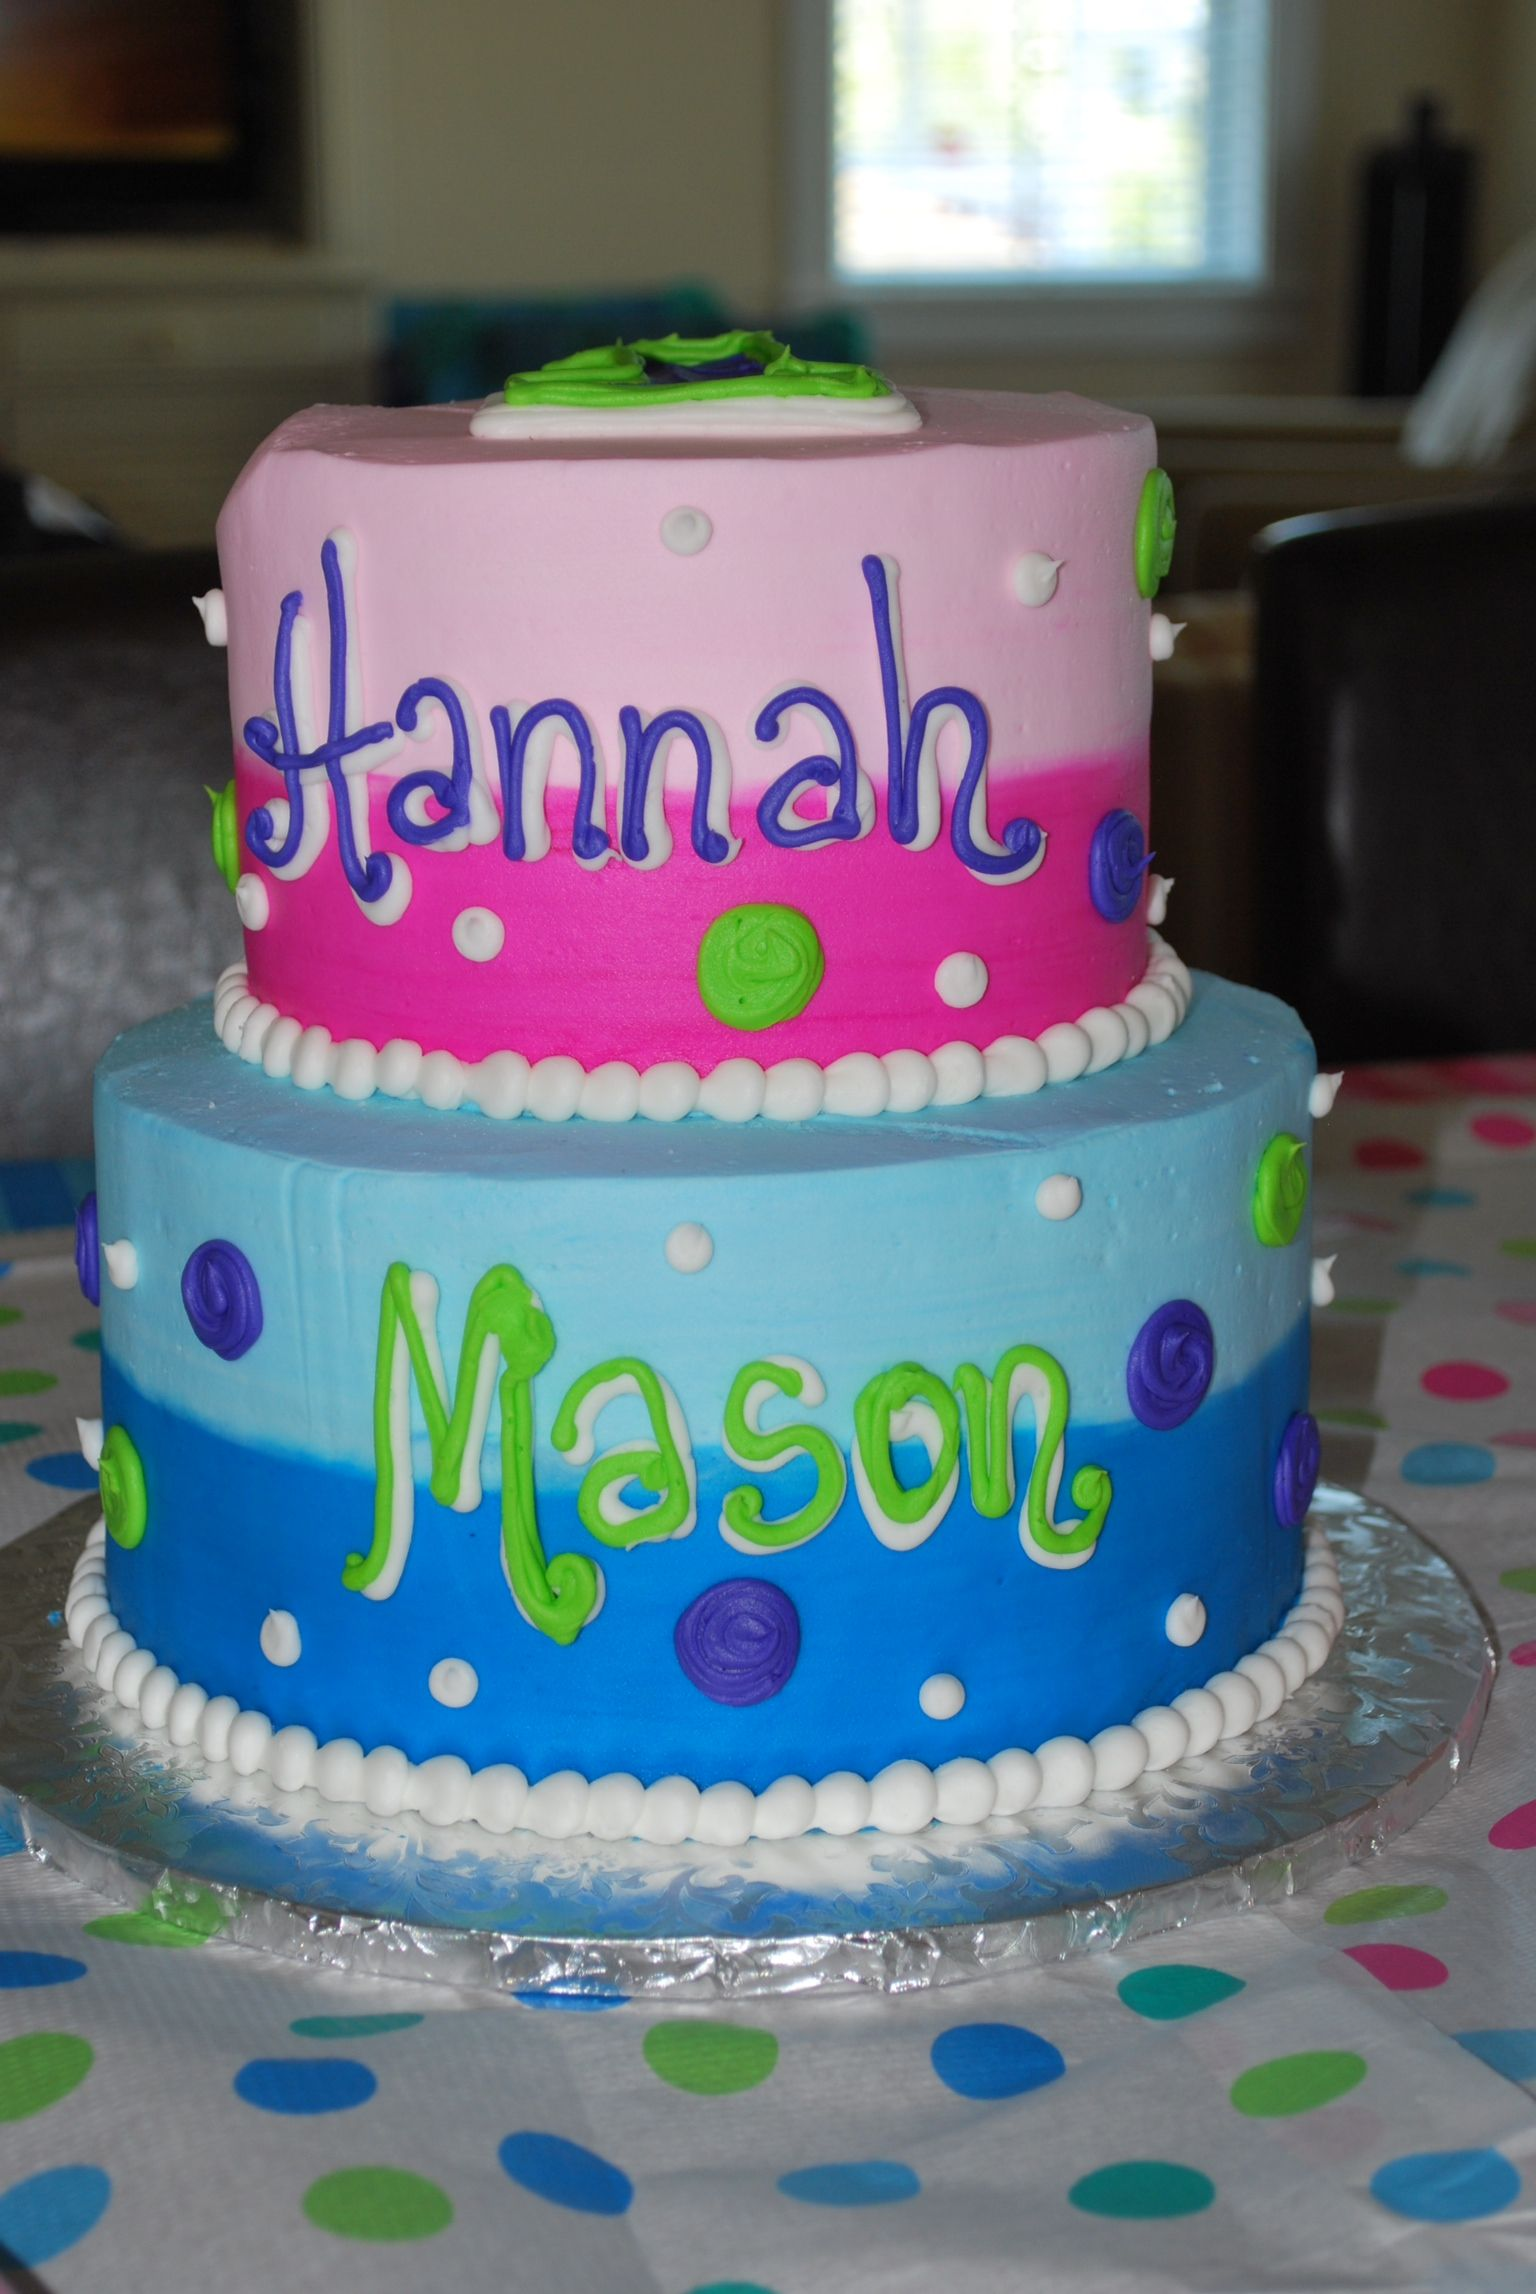 Wondrous Boy Girl Twins Cake Good Way To Have Their Own But Same Cake Personalised Birthday Cards Paralily Jamesorg